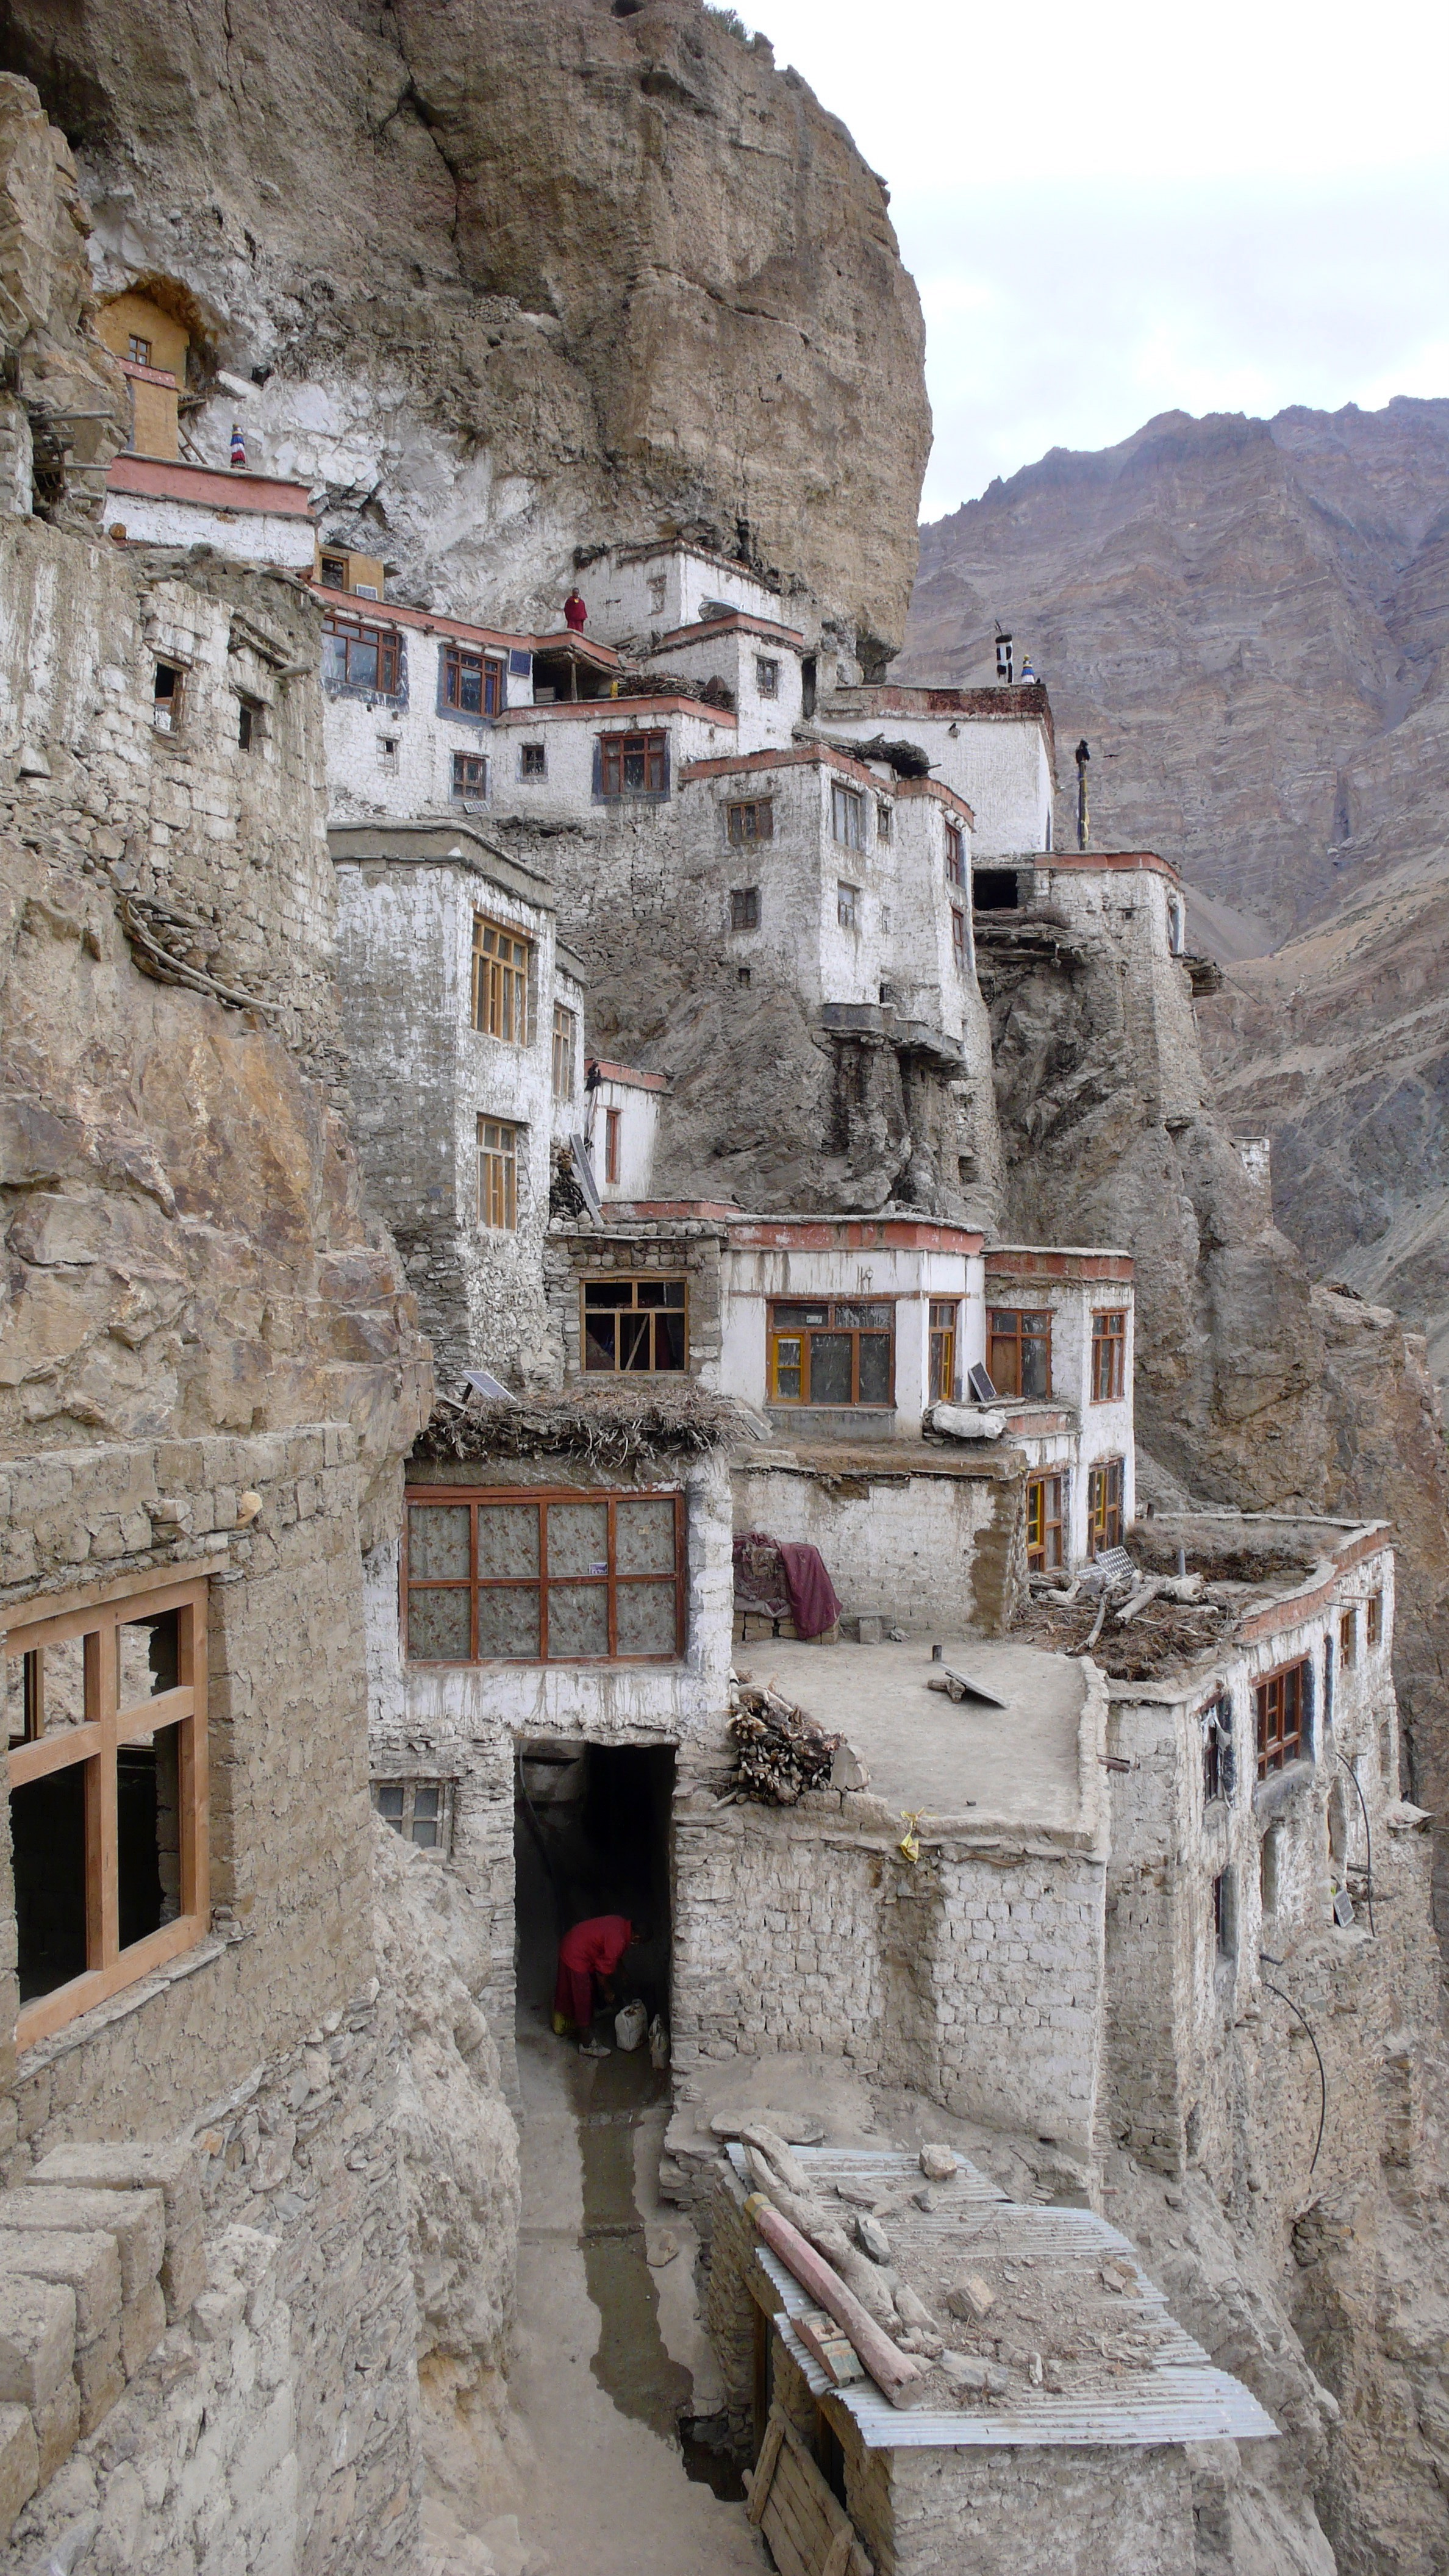 Responsible and ethical travel to Ladakh, India